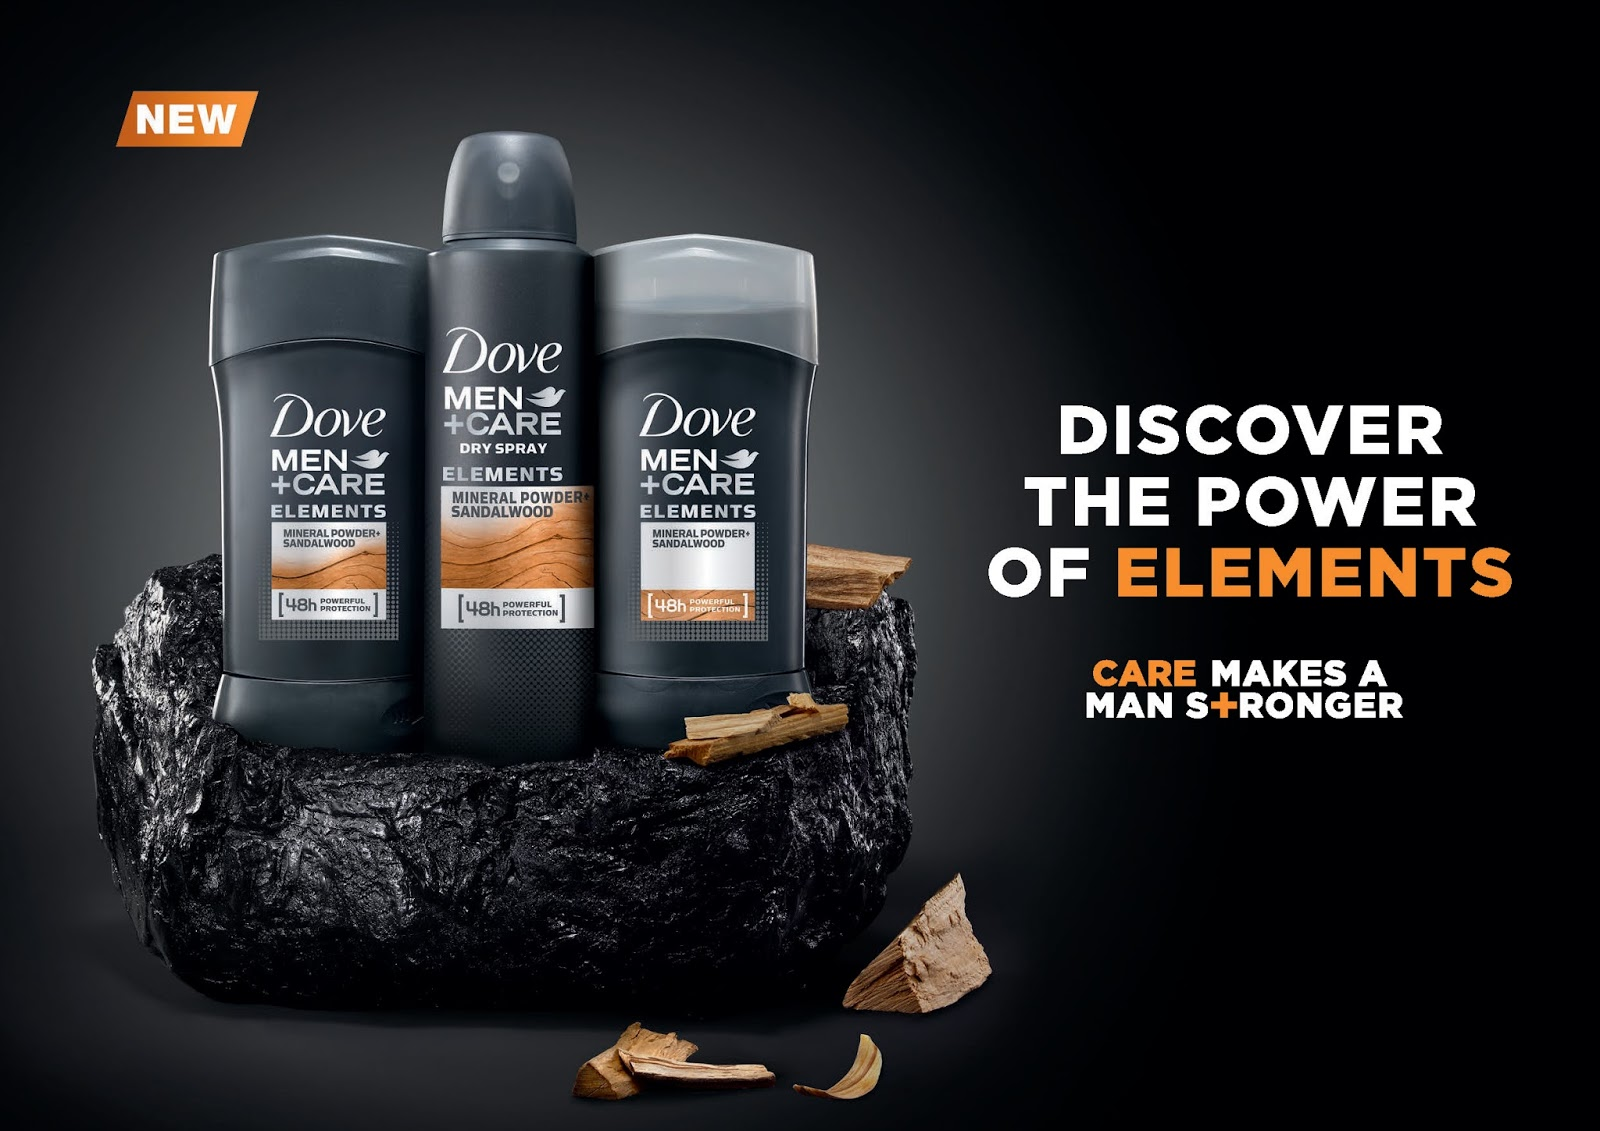 A Geek Daddy Dove Men Care Launches New Elements Nature Inspired Grooming Products